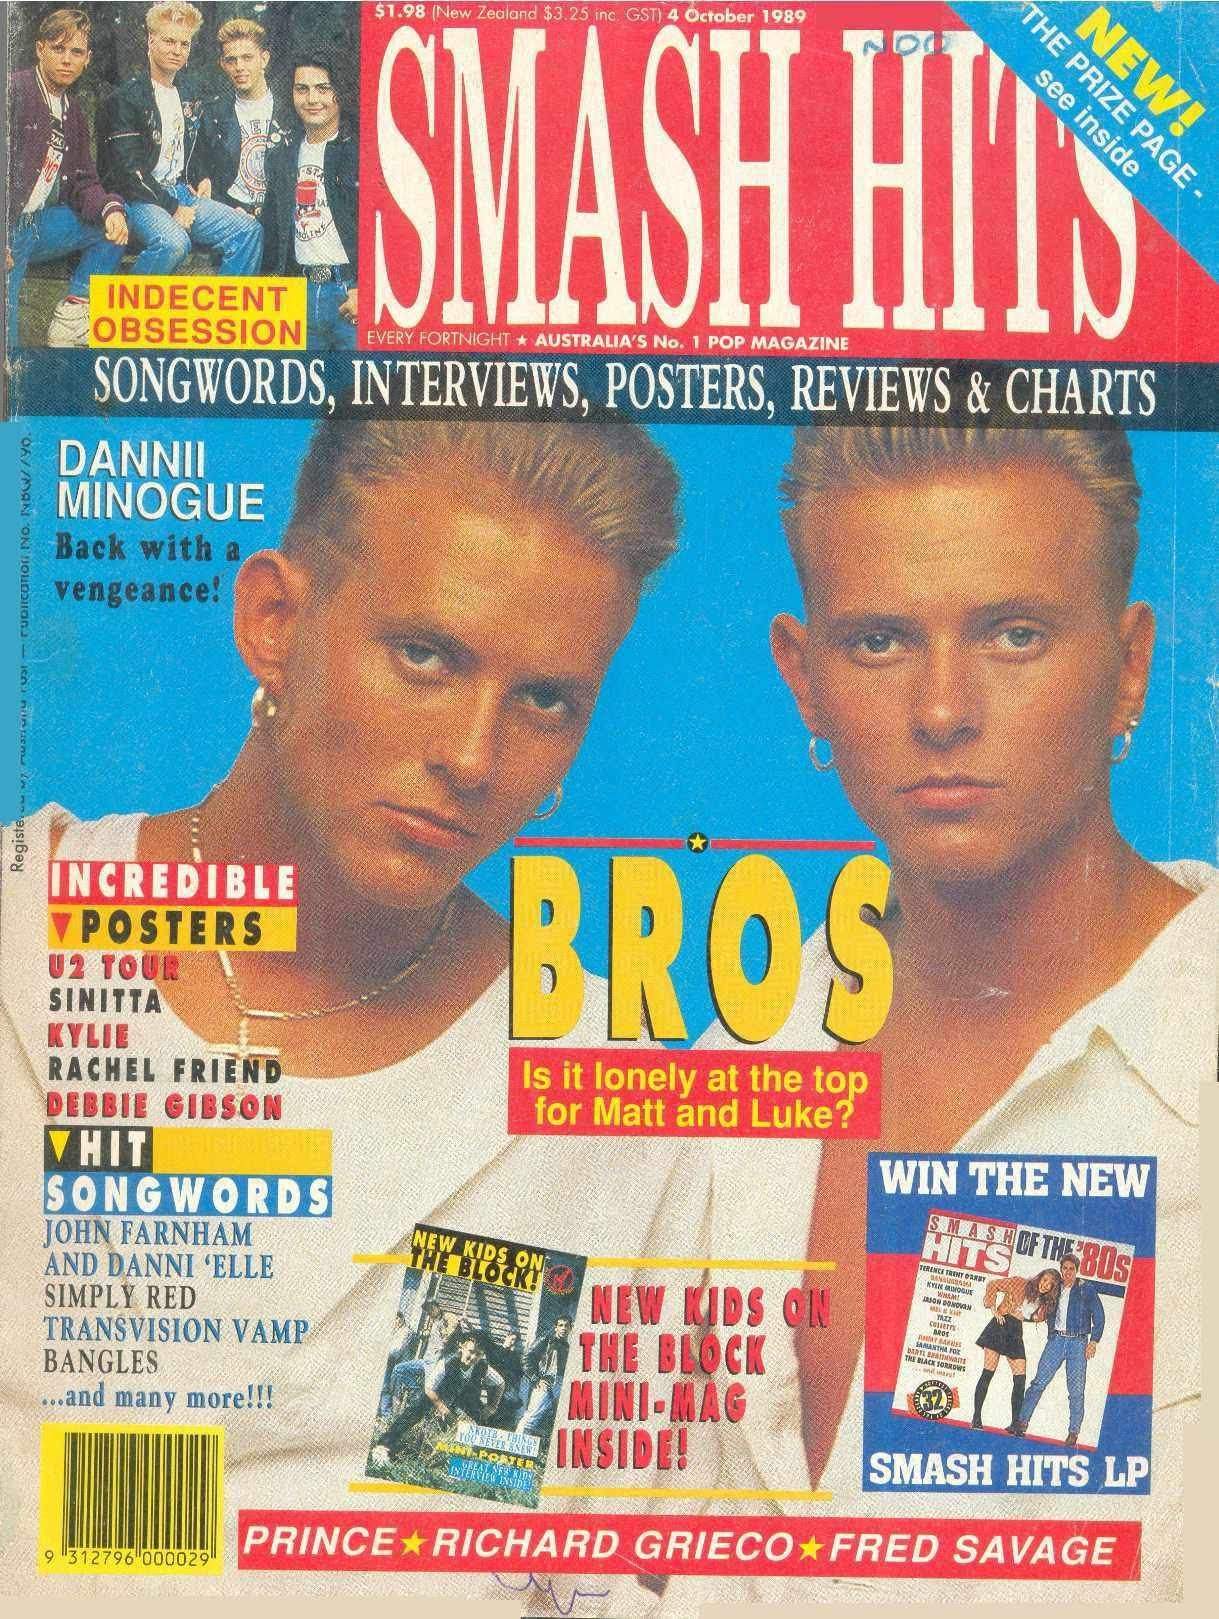 Smash Hits magazine from 1989 featuring Bros